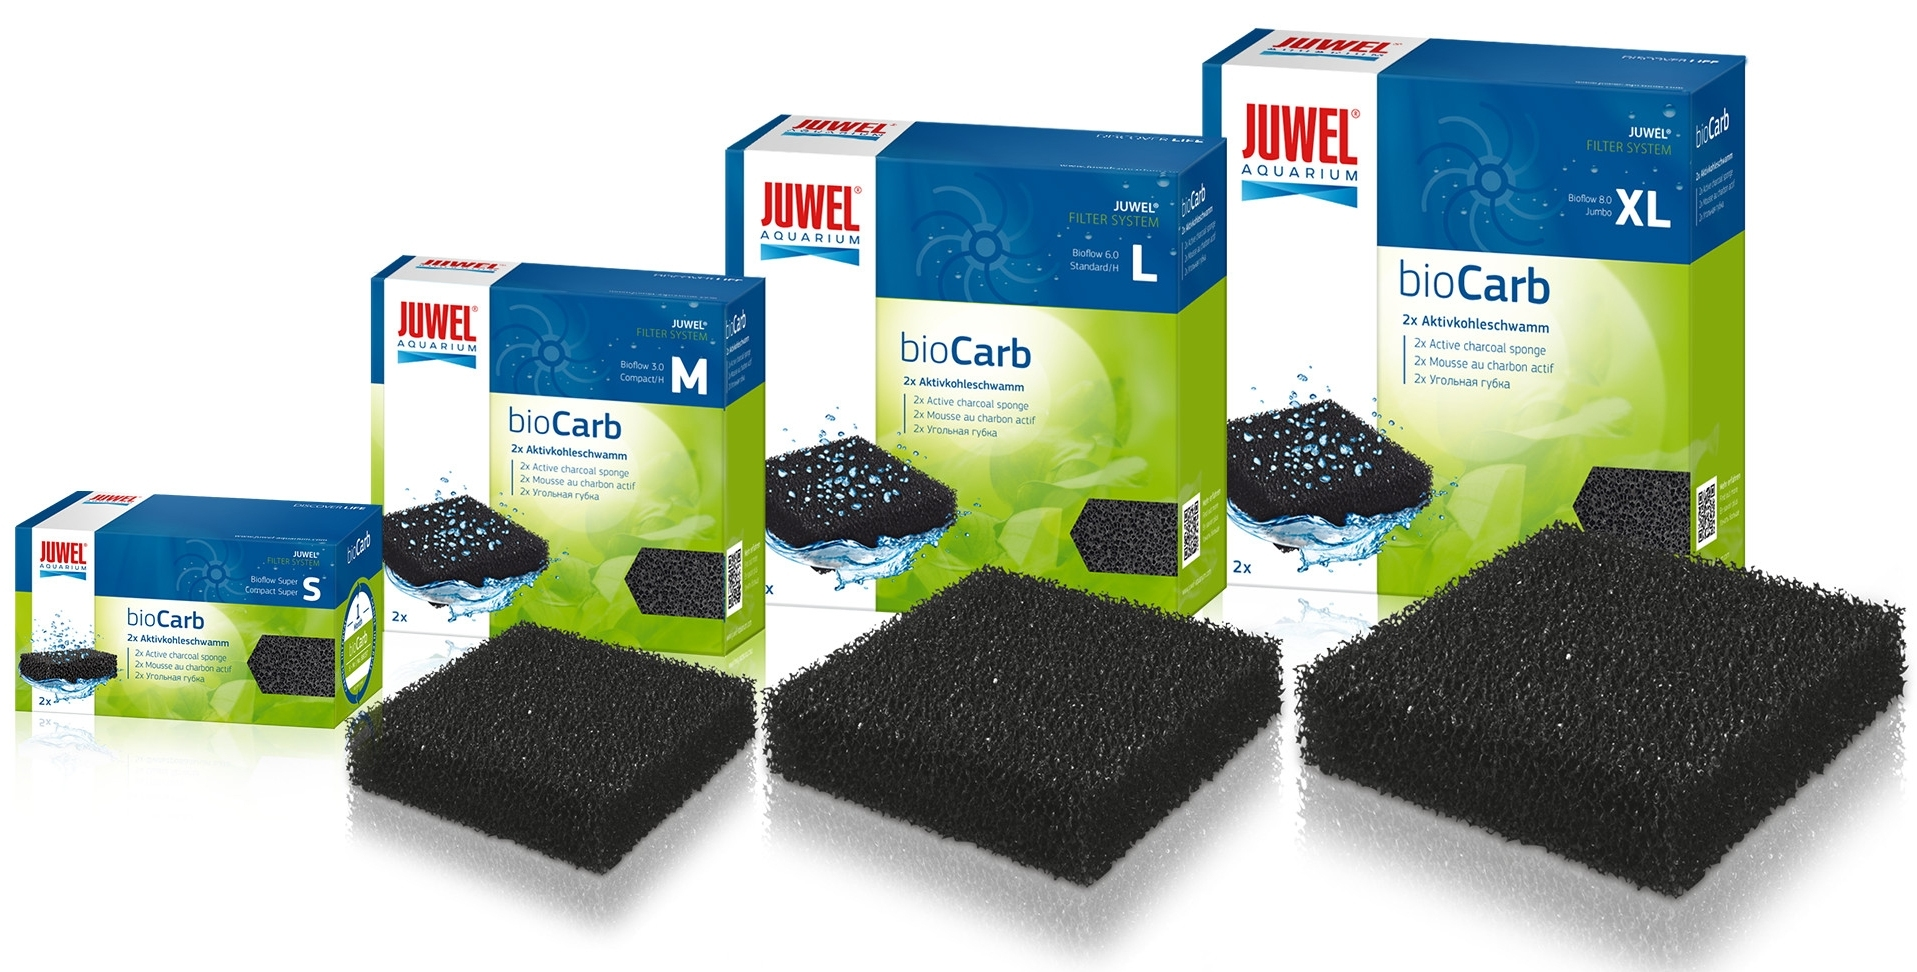 Shop Juwel bioCarb -active carbon sponge-